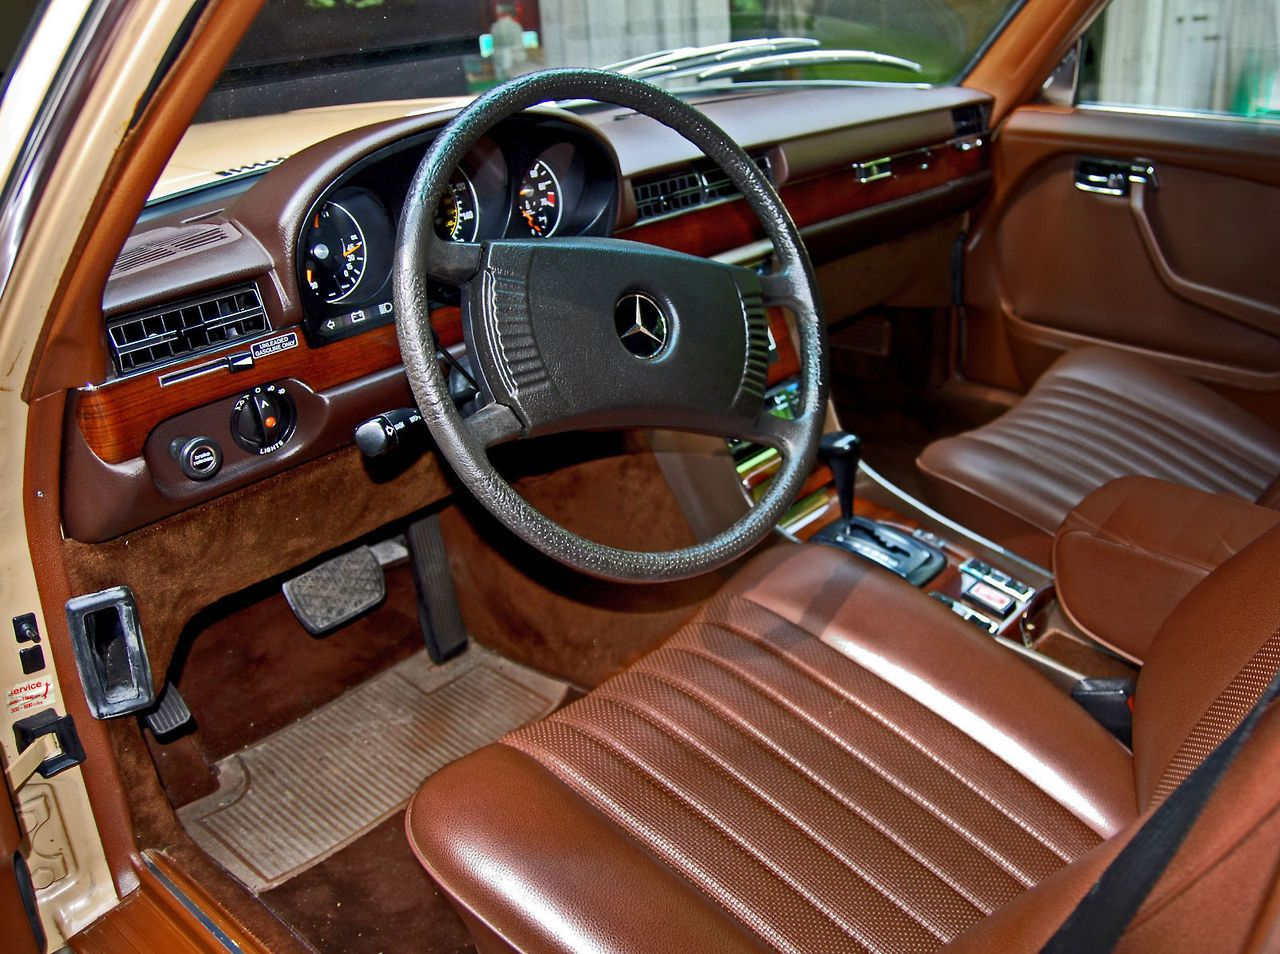 Mercedes W116 In Great Color Combo Especially The Rich Bamboo